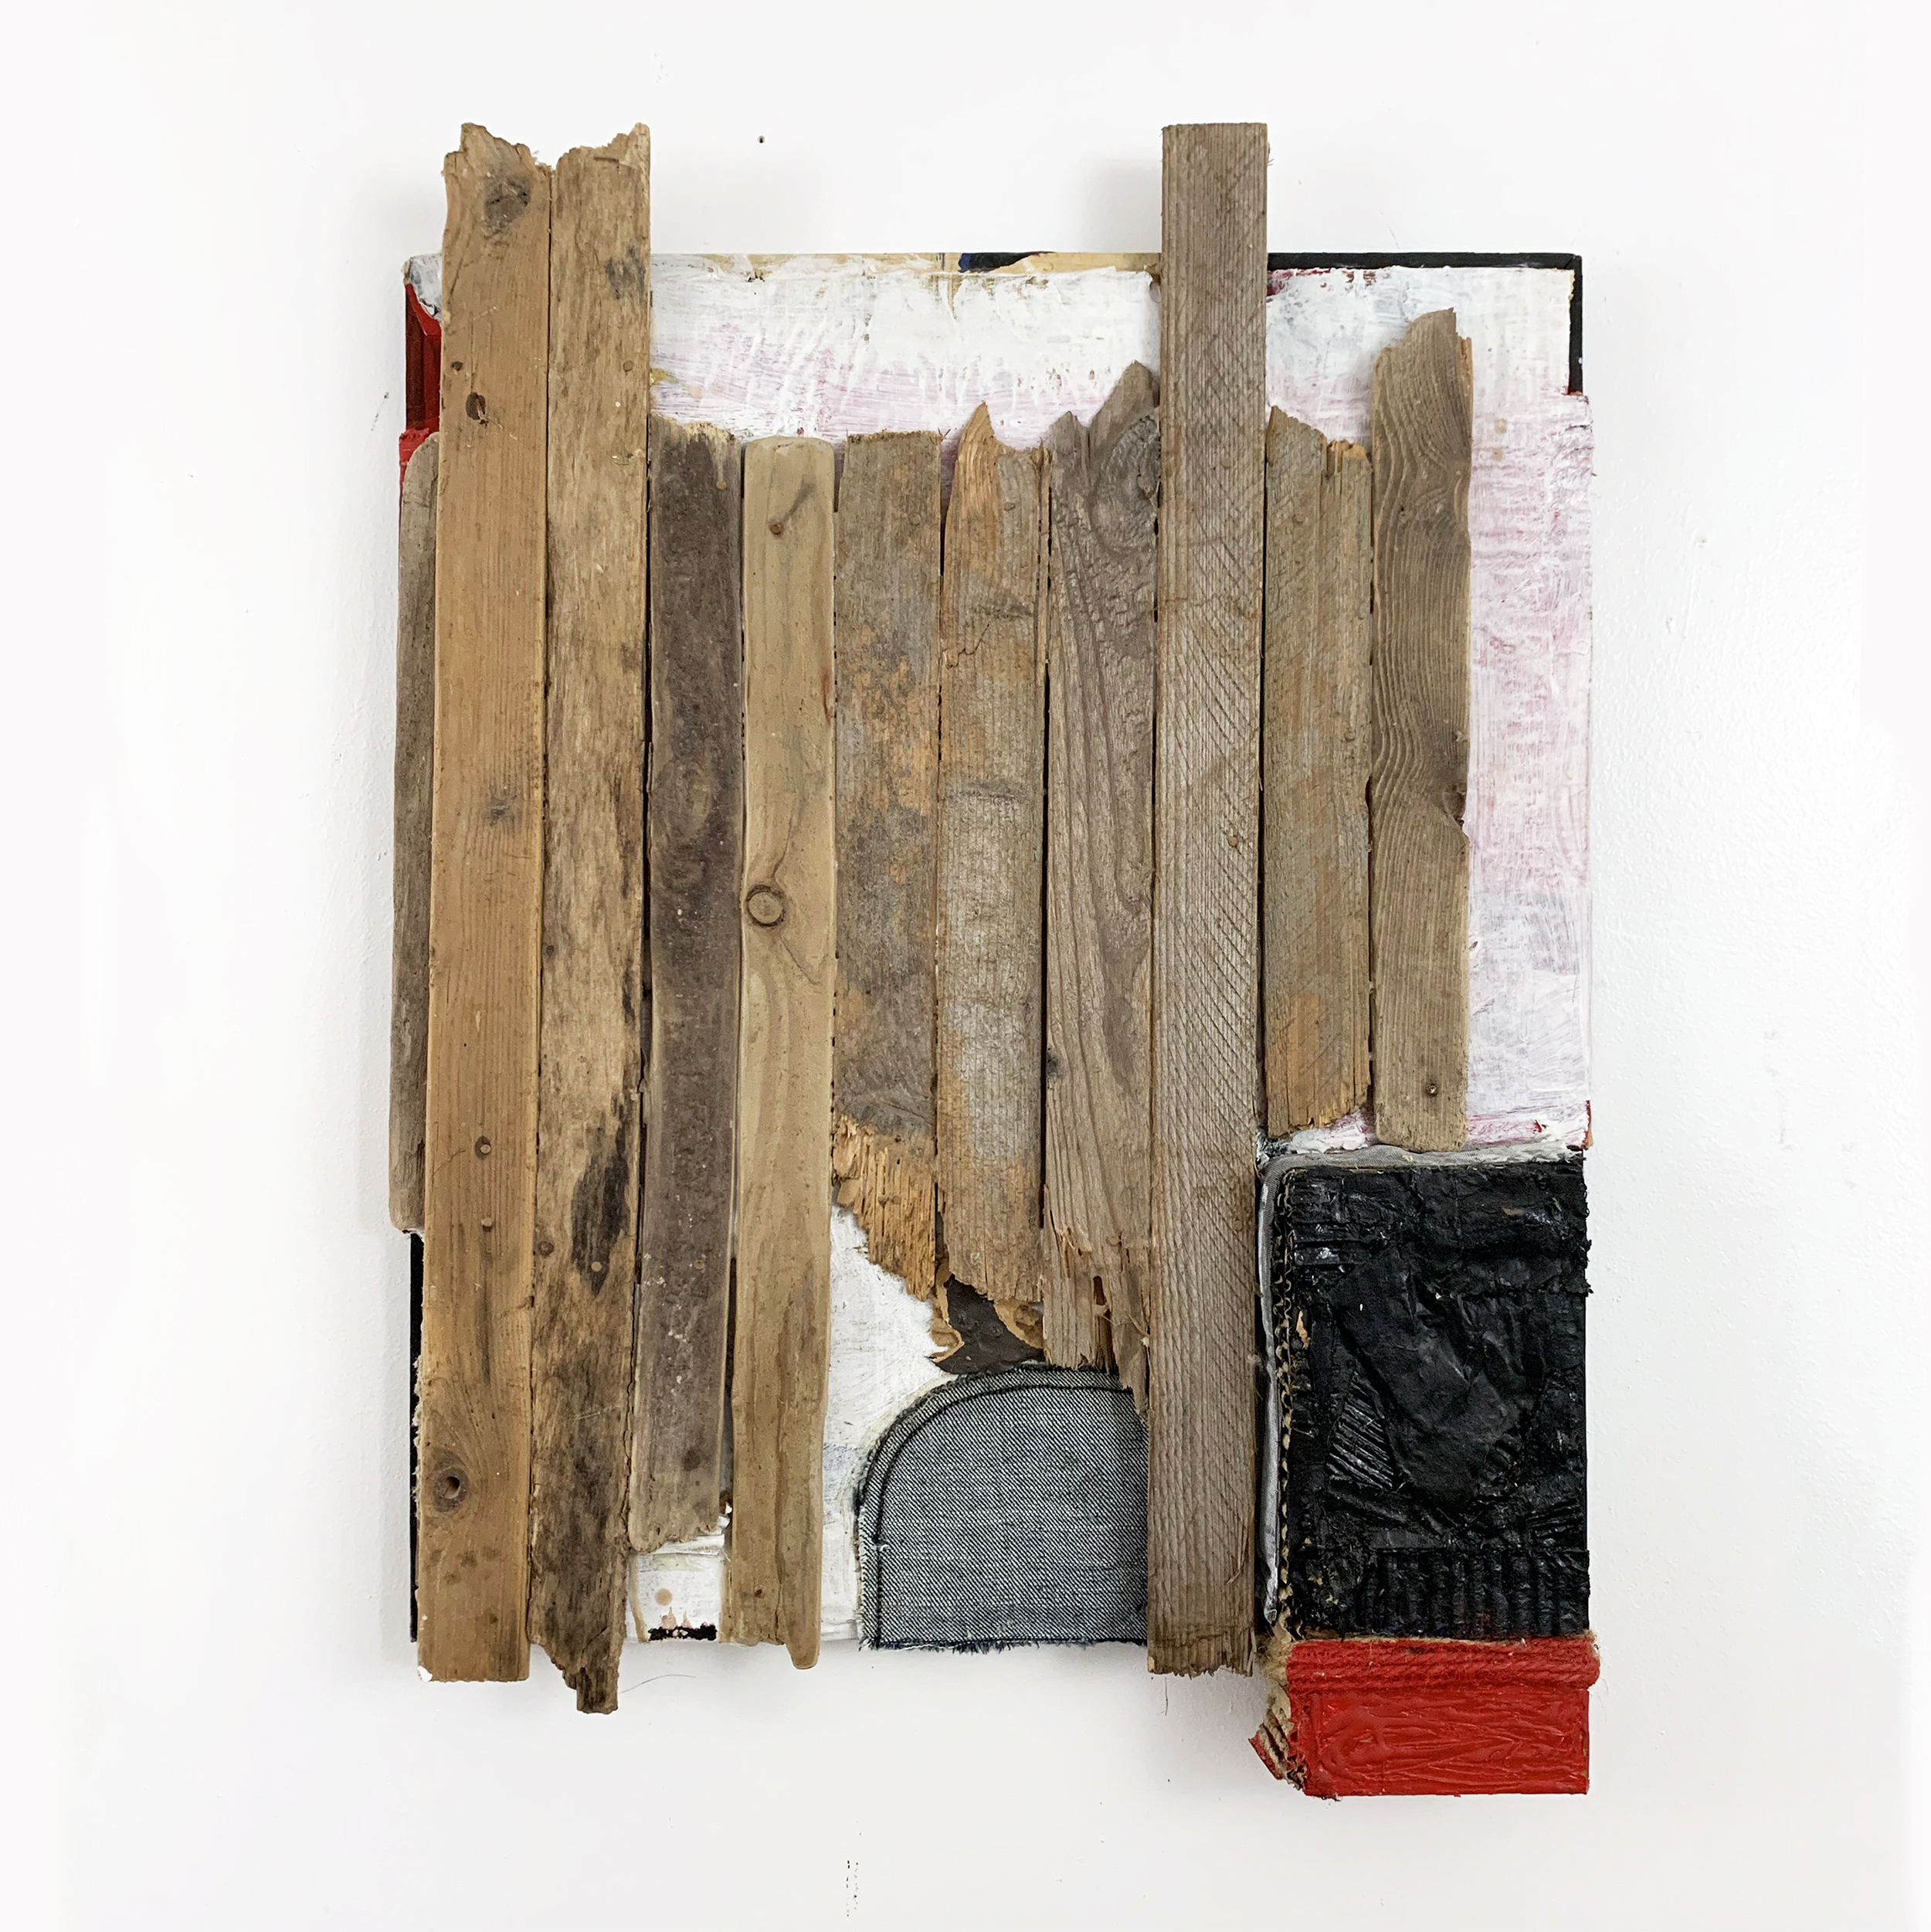 "Untitled, 2012, acrylic, fabric, twine, wood and cardboard on canvas, 24"" x 17"" x 2.5"""